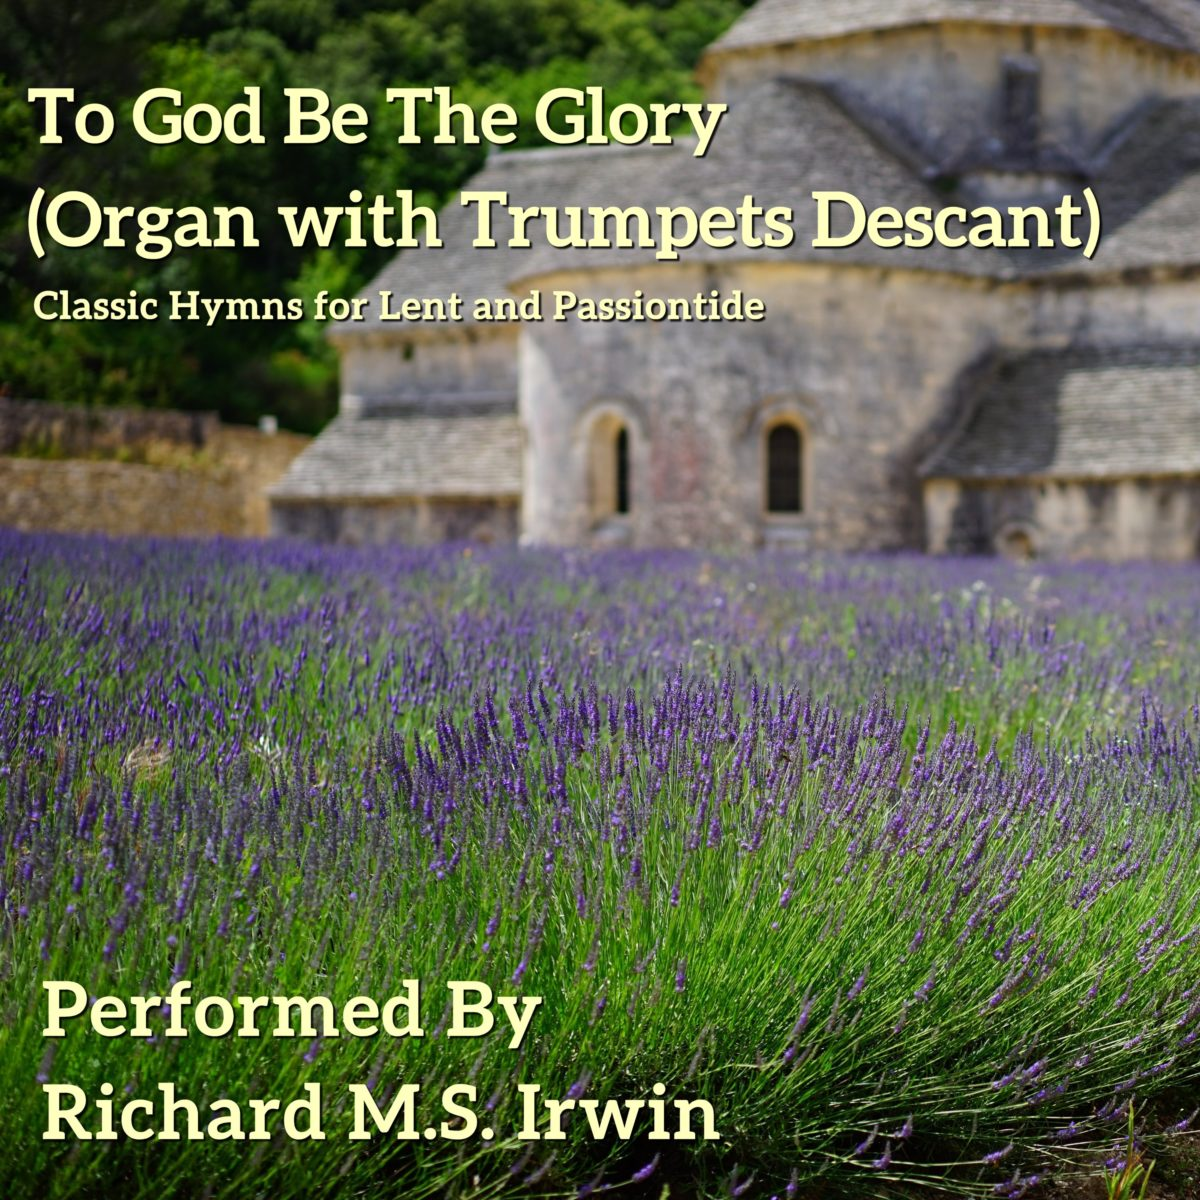 To God Be The Glory (Organ And Trumpets Descant, 3 Verses)